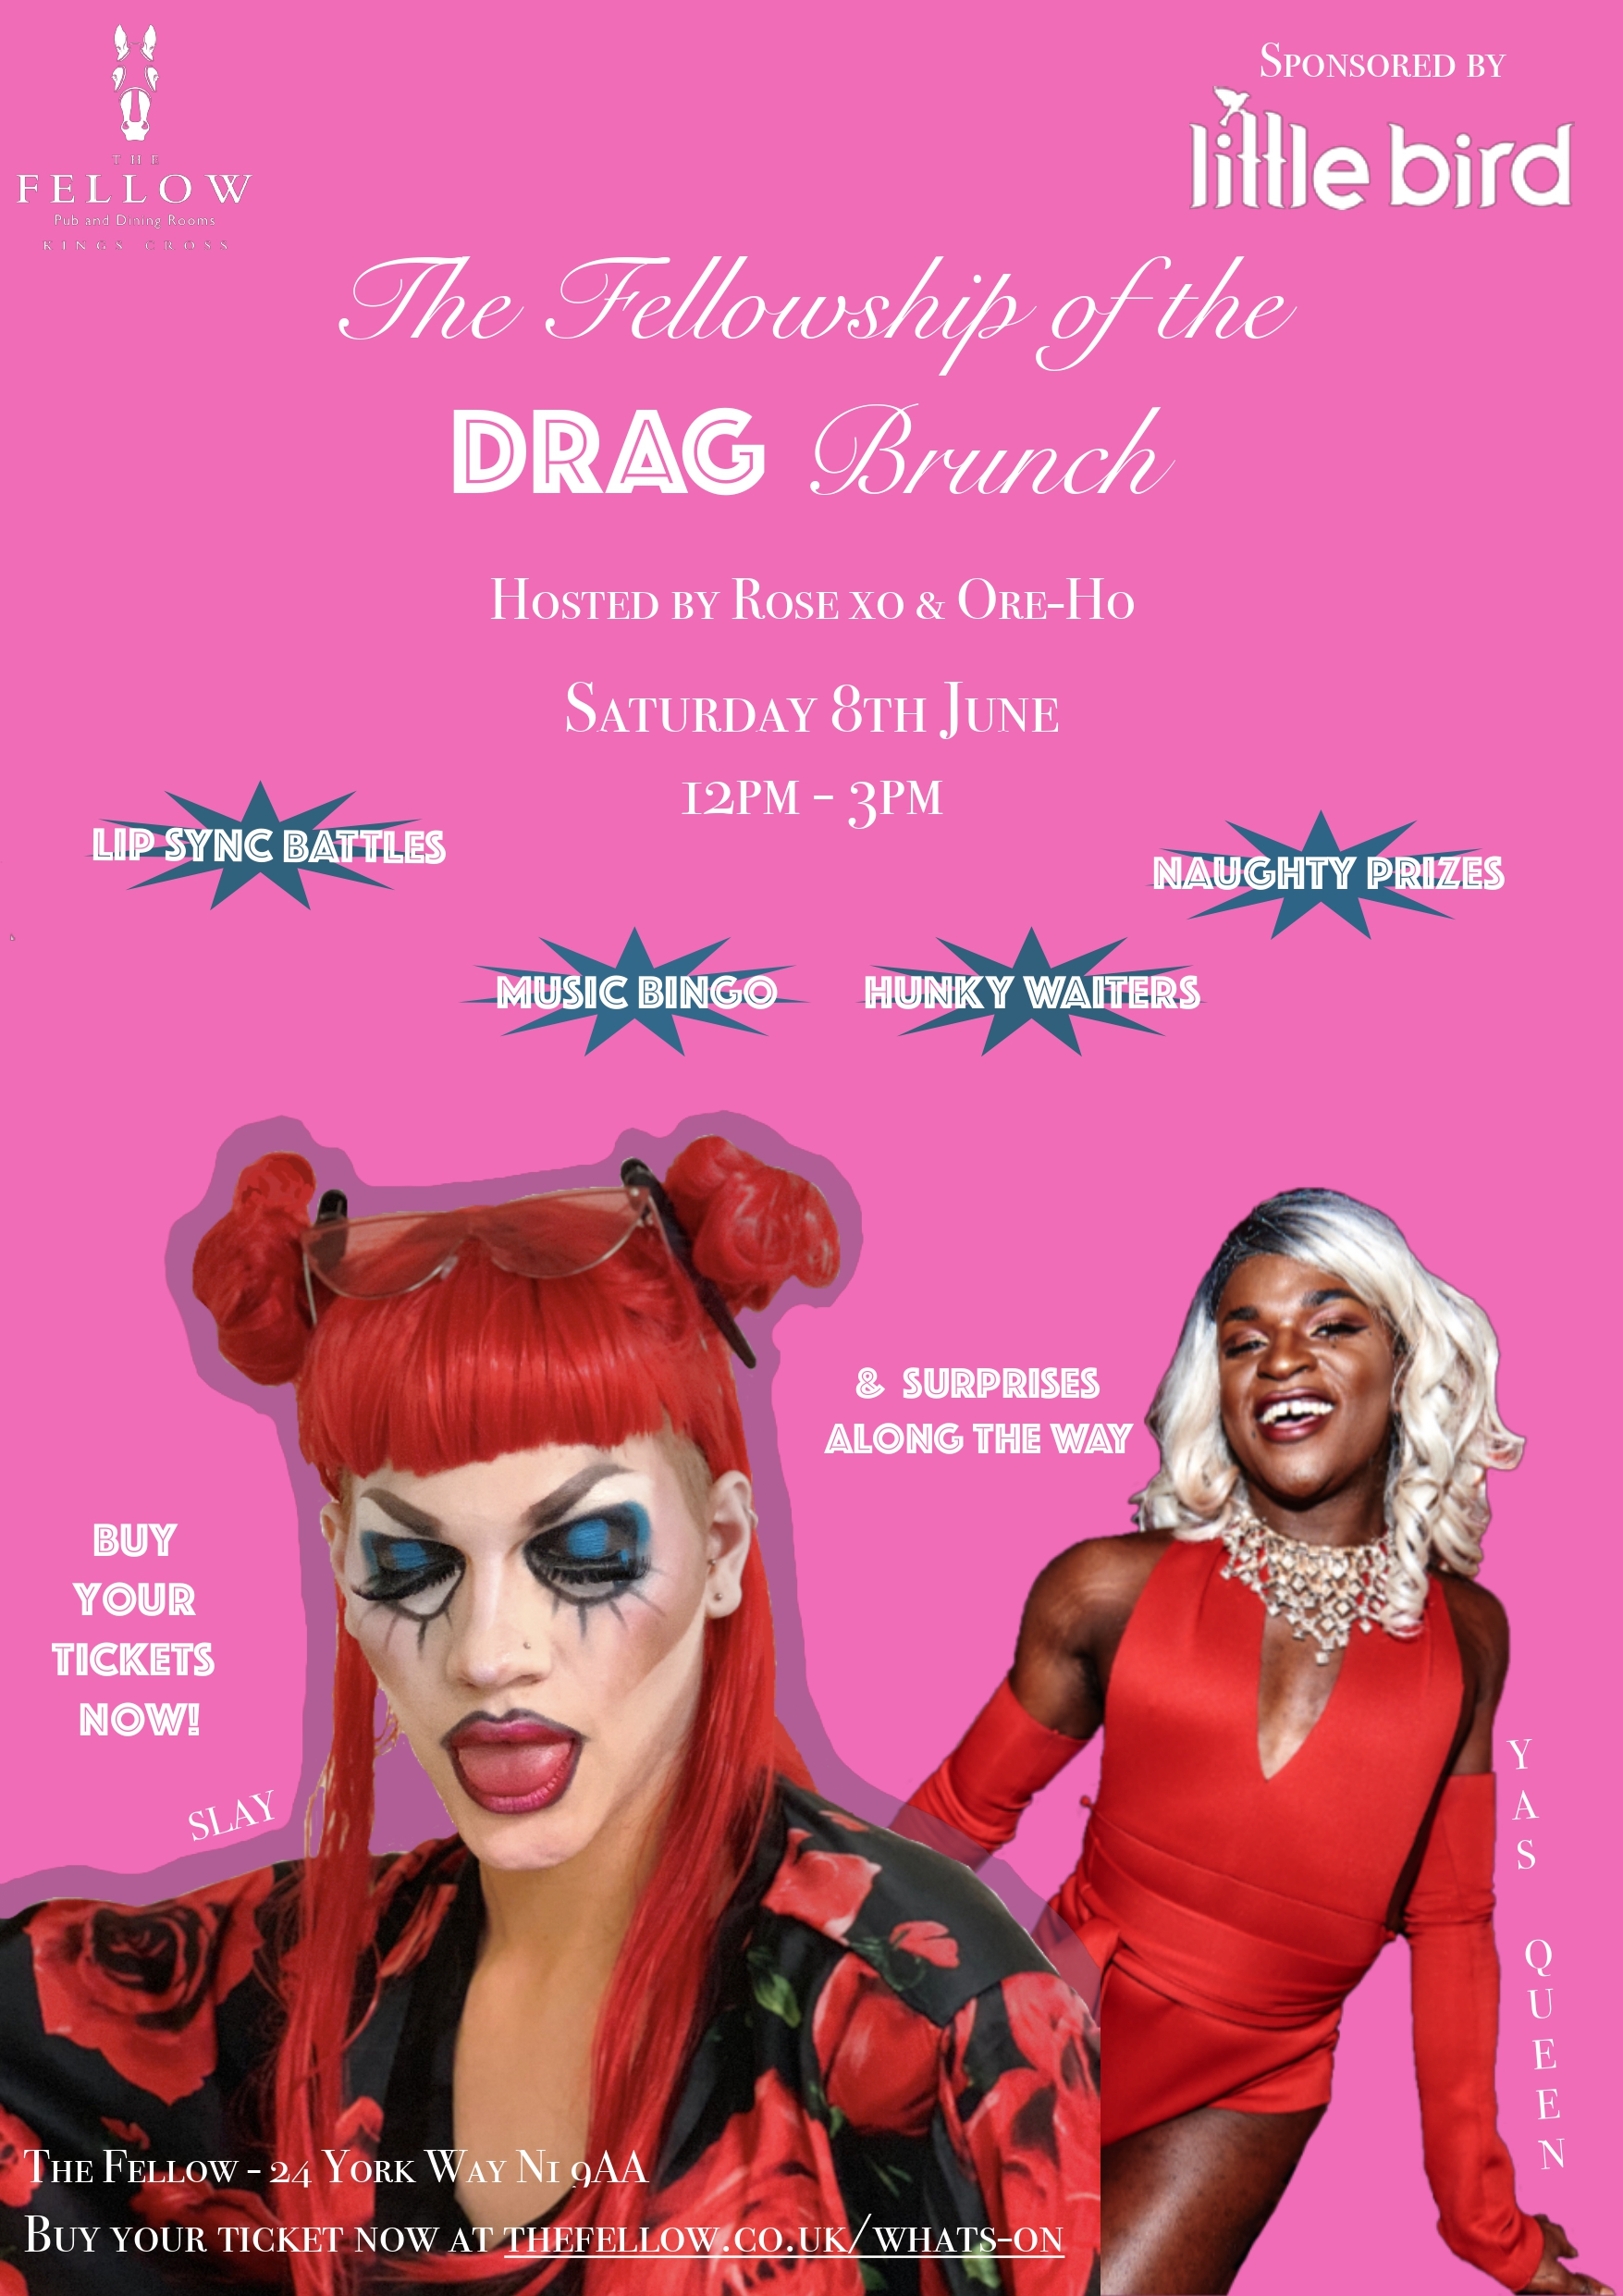 The Fellowship of the Drag...Brunch